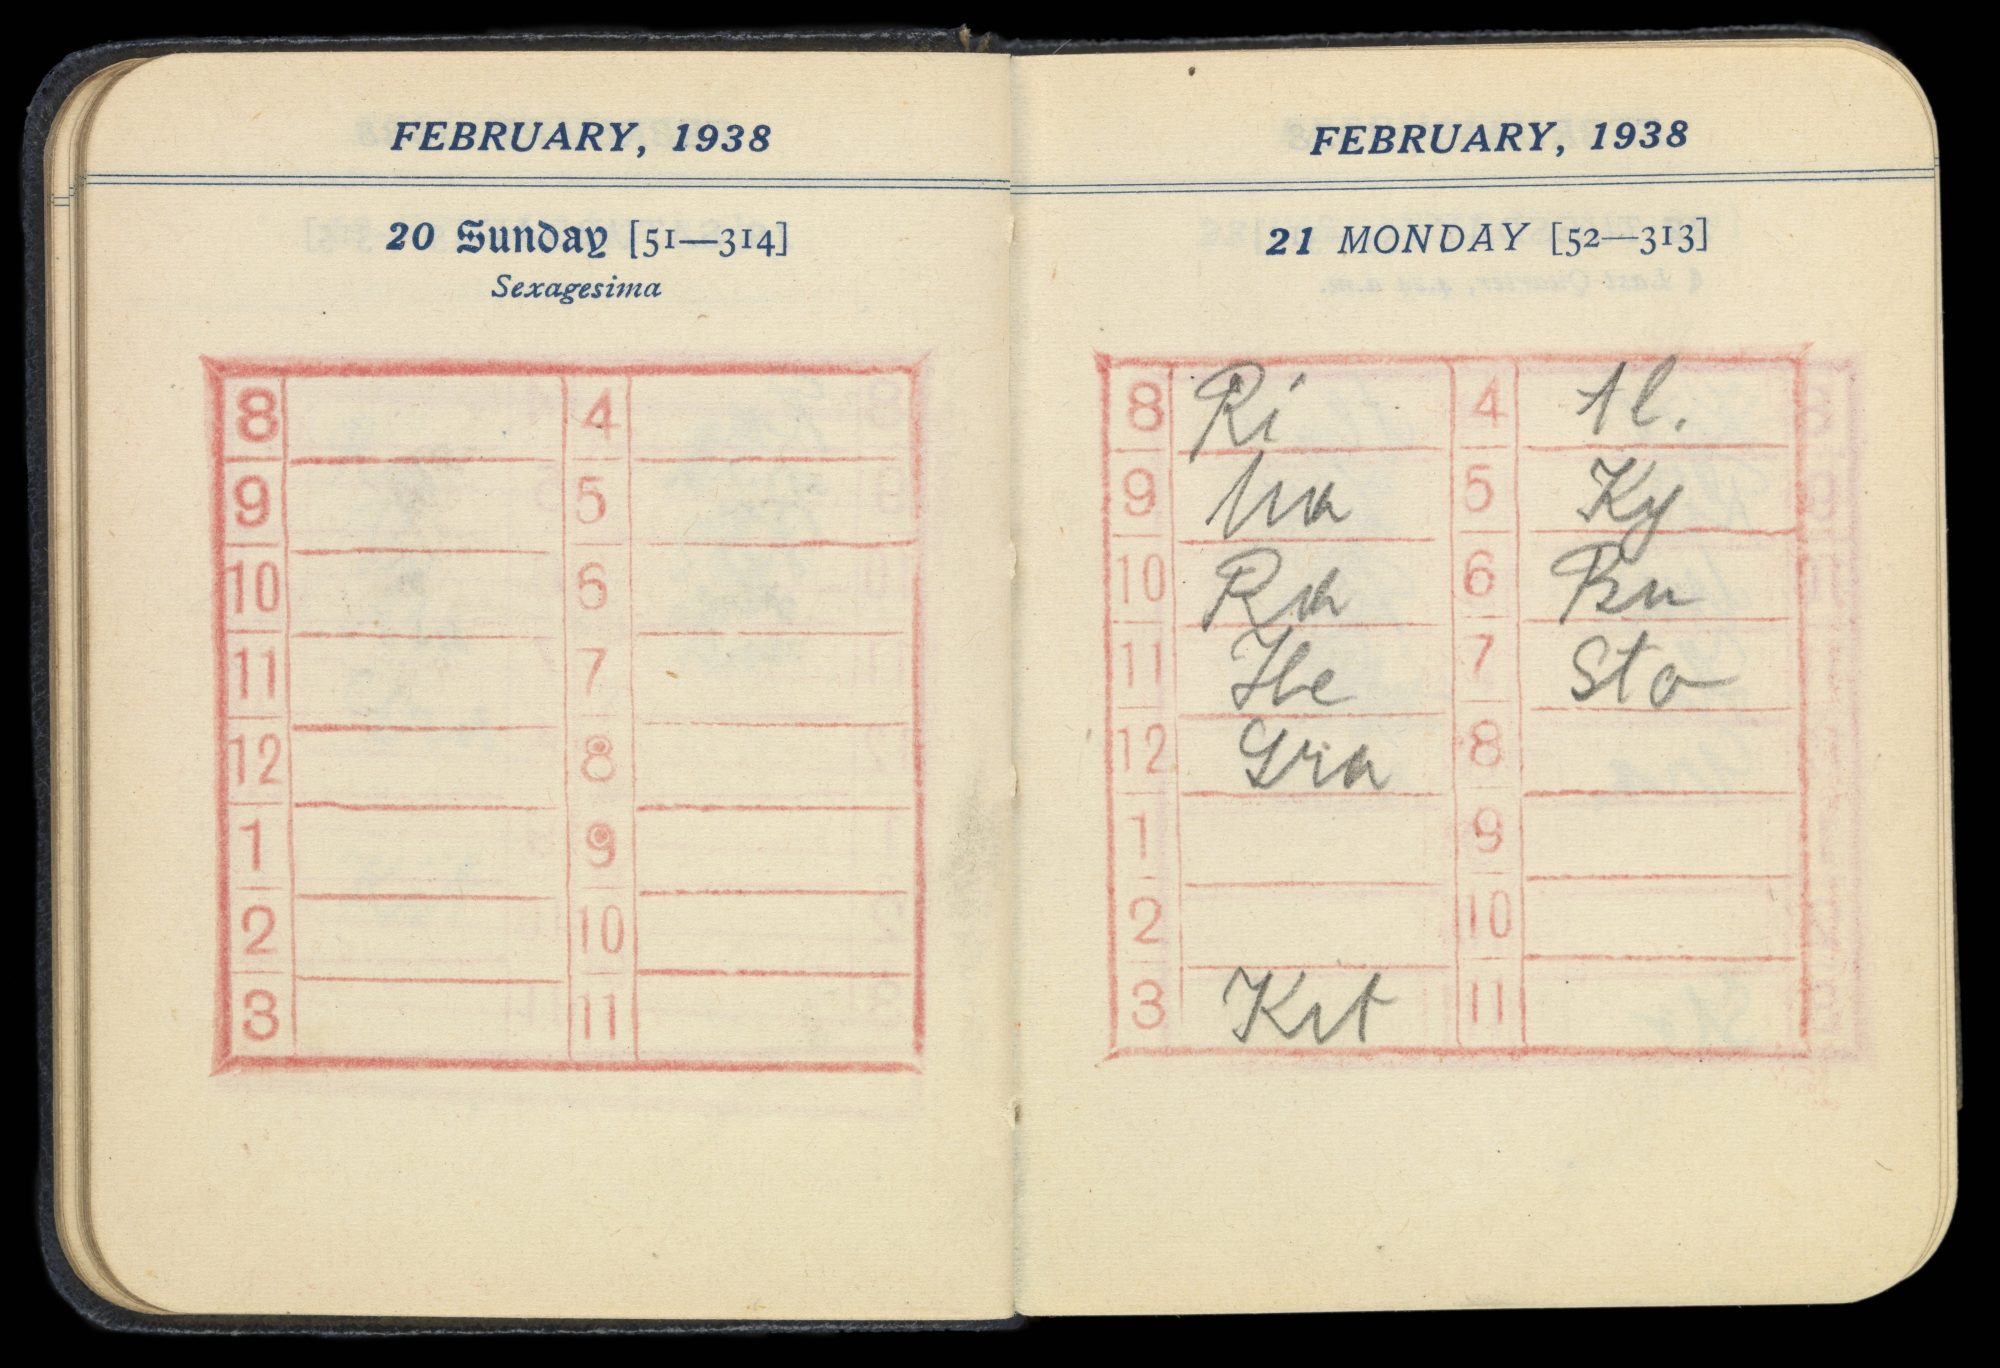 Photograph of pages from Melanie Klein's diary from 1938